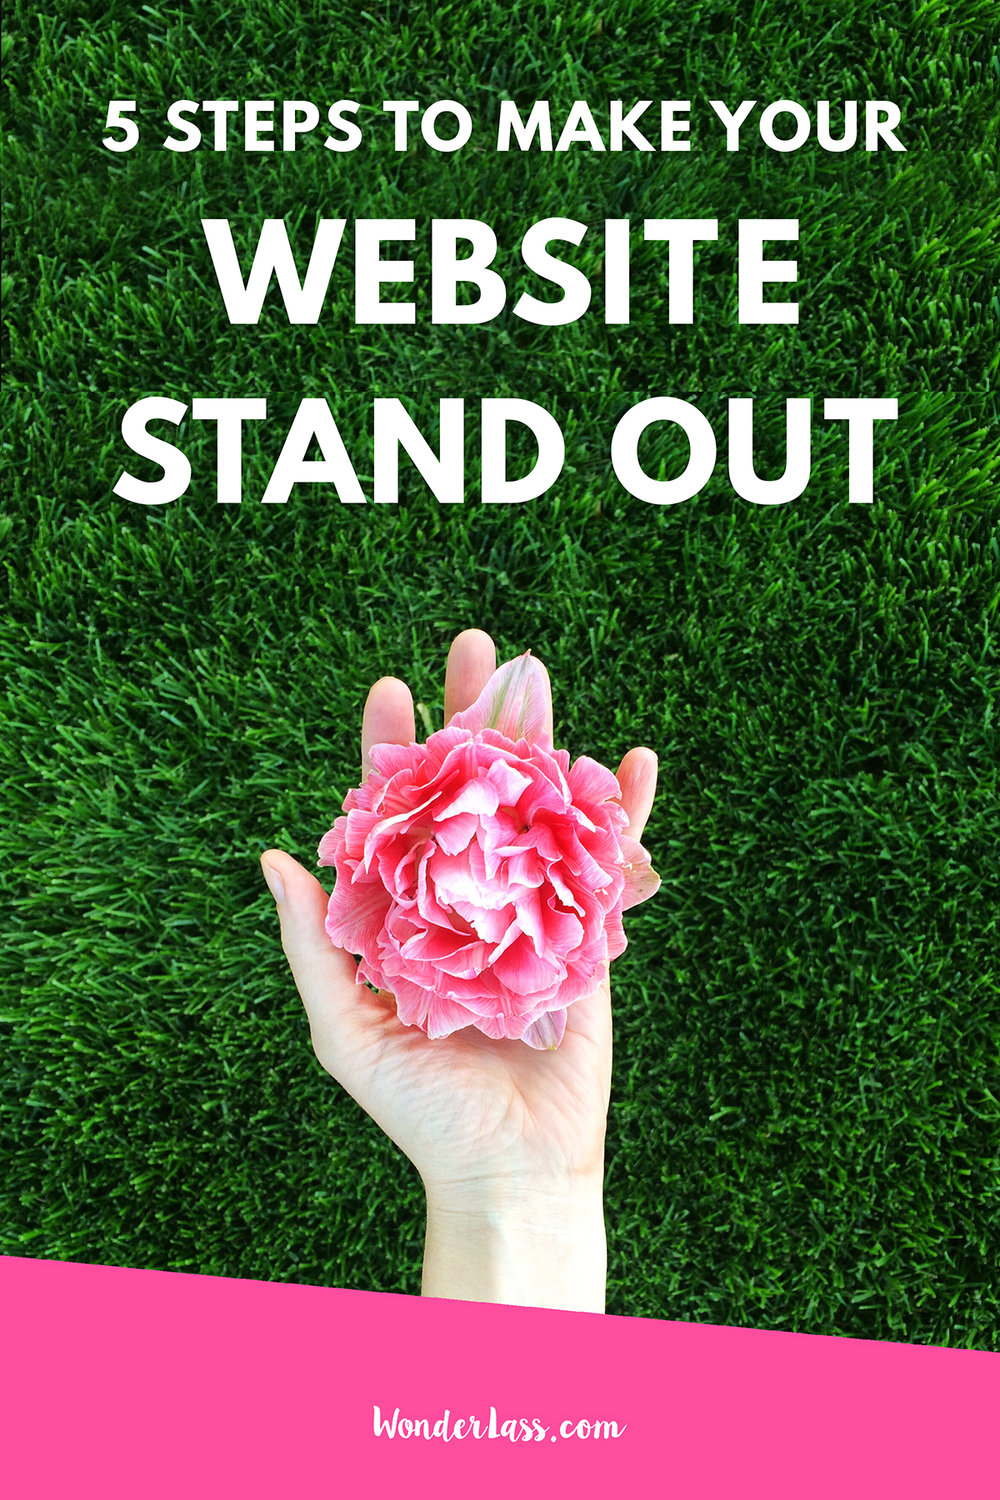 5 Steps to Make Your Website Stand Out | Learn actionable ways to make your website stand out online so that you can grow your following | Wonderlass